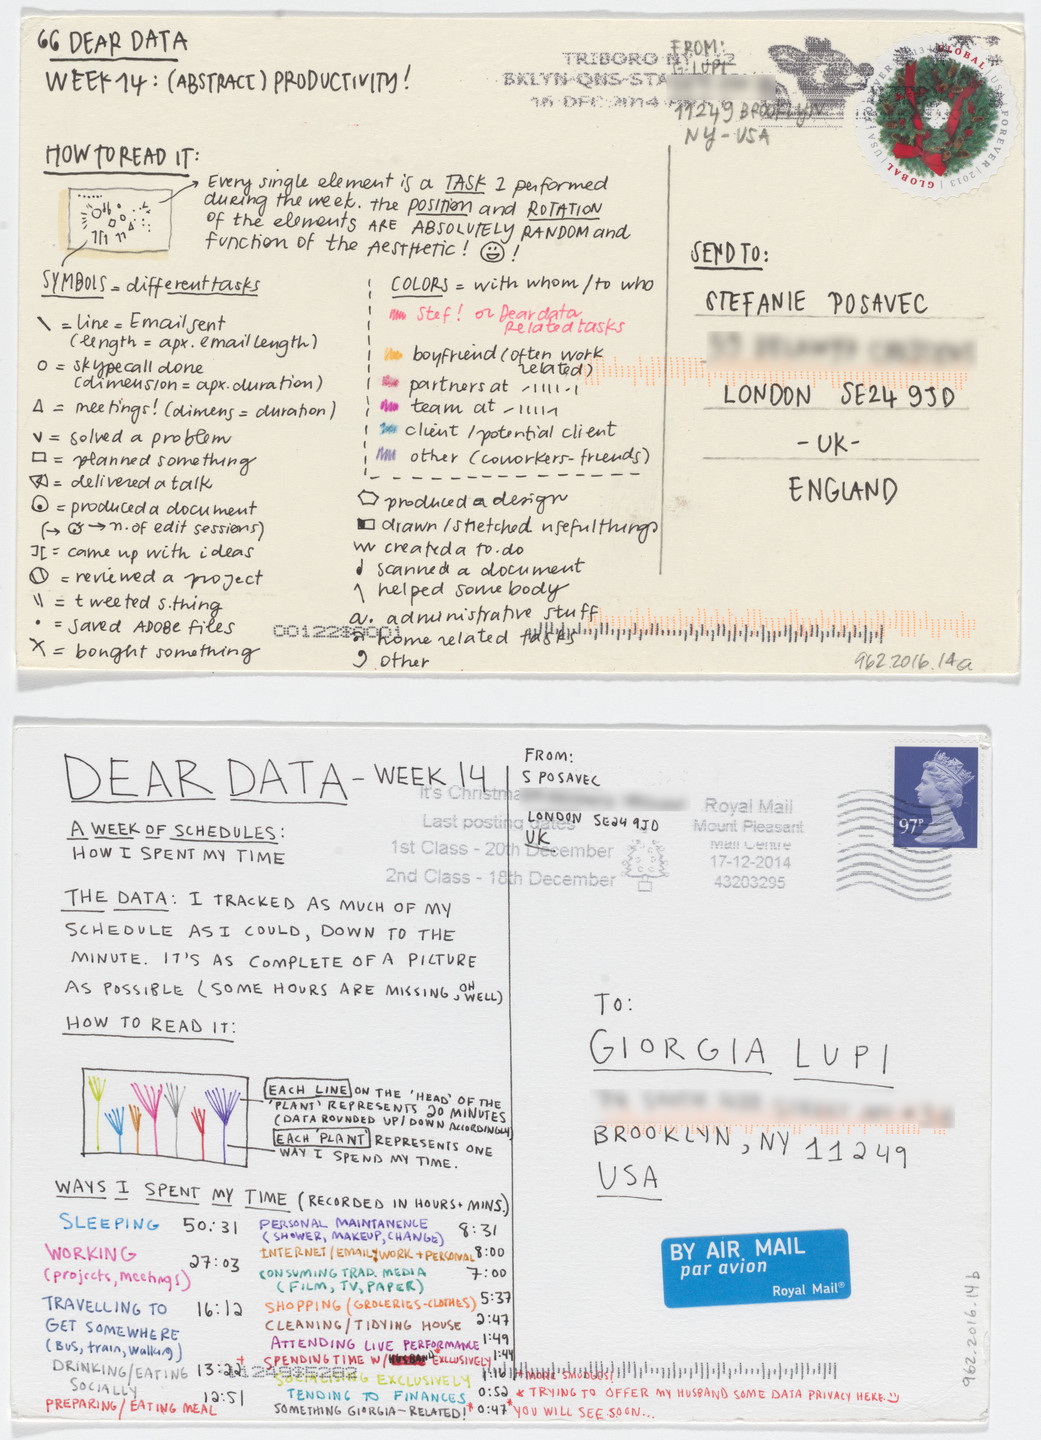 Giorgia Lupi, Stefanie Posavec. Dear Data: Week 14 (Abstract Productivity / A Week of Schedules). 2014